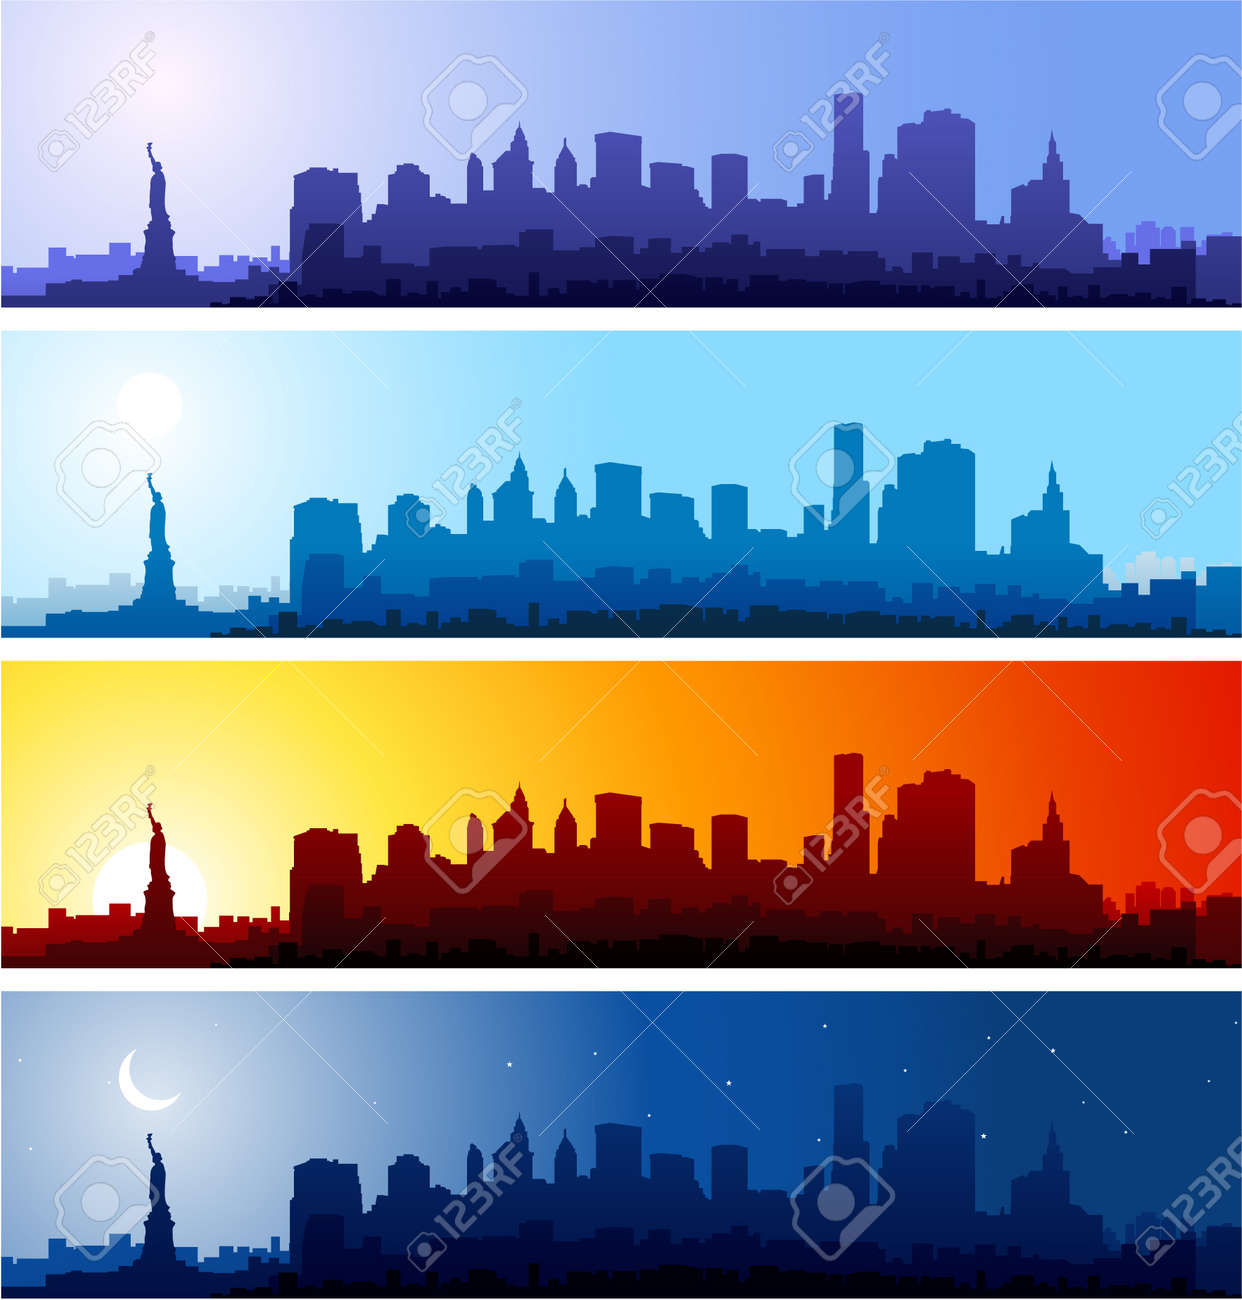 Outline athens skyline with blue buildings and copy space stock vector - Downtown Cab New York City Skyline At Different Time Of The Day